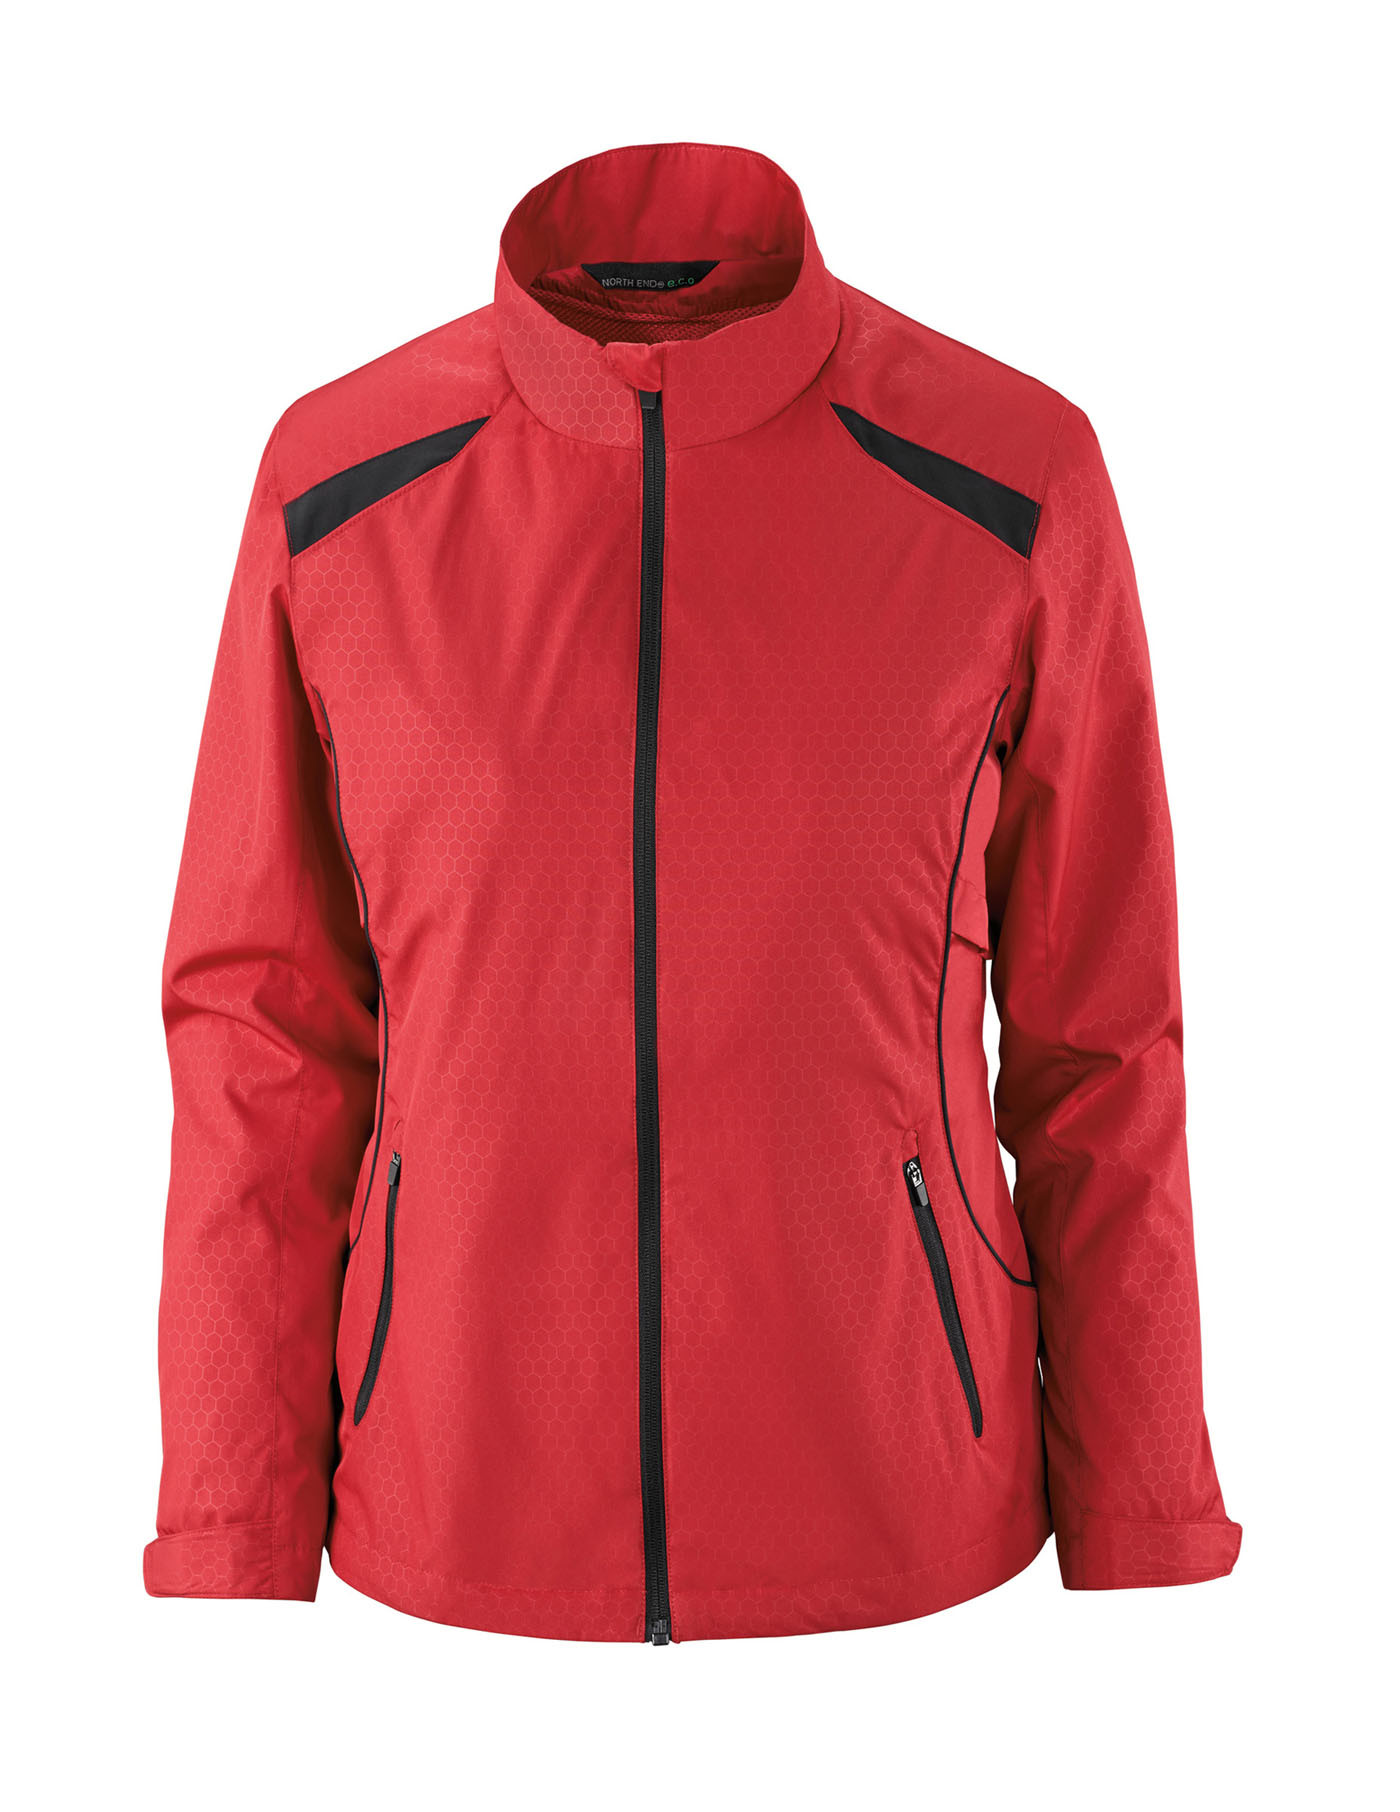 Ash City e.c.o Outerwear 78188 - Tempo Jacket Ladies' Lightweight Recycled Polyester Jacket With Embossed Print